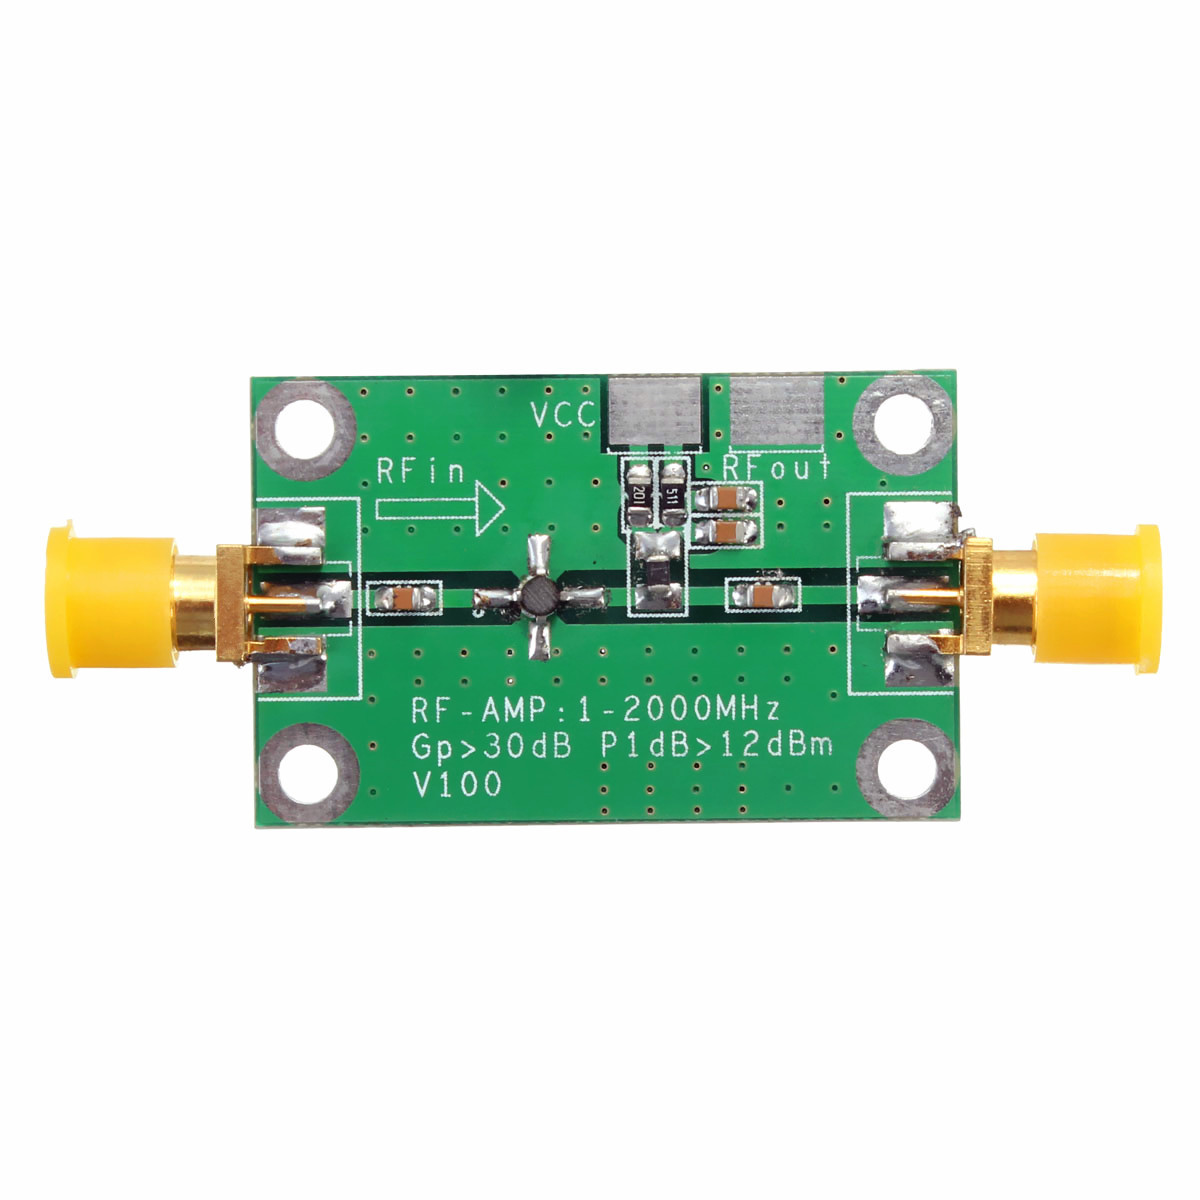 Design; Leory Ultra-high Frequency 1-2000mhz 2ghz 30db Rf Amplifier Board Broadband Gain Amplification Low Noise Module For Vhfvhf/uhf Novel In